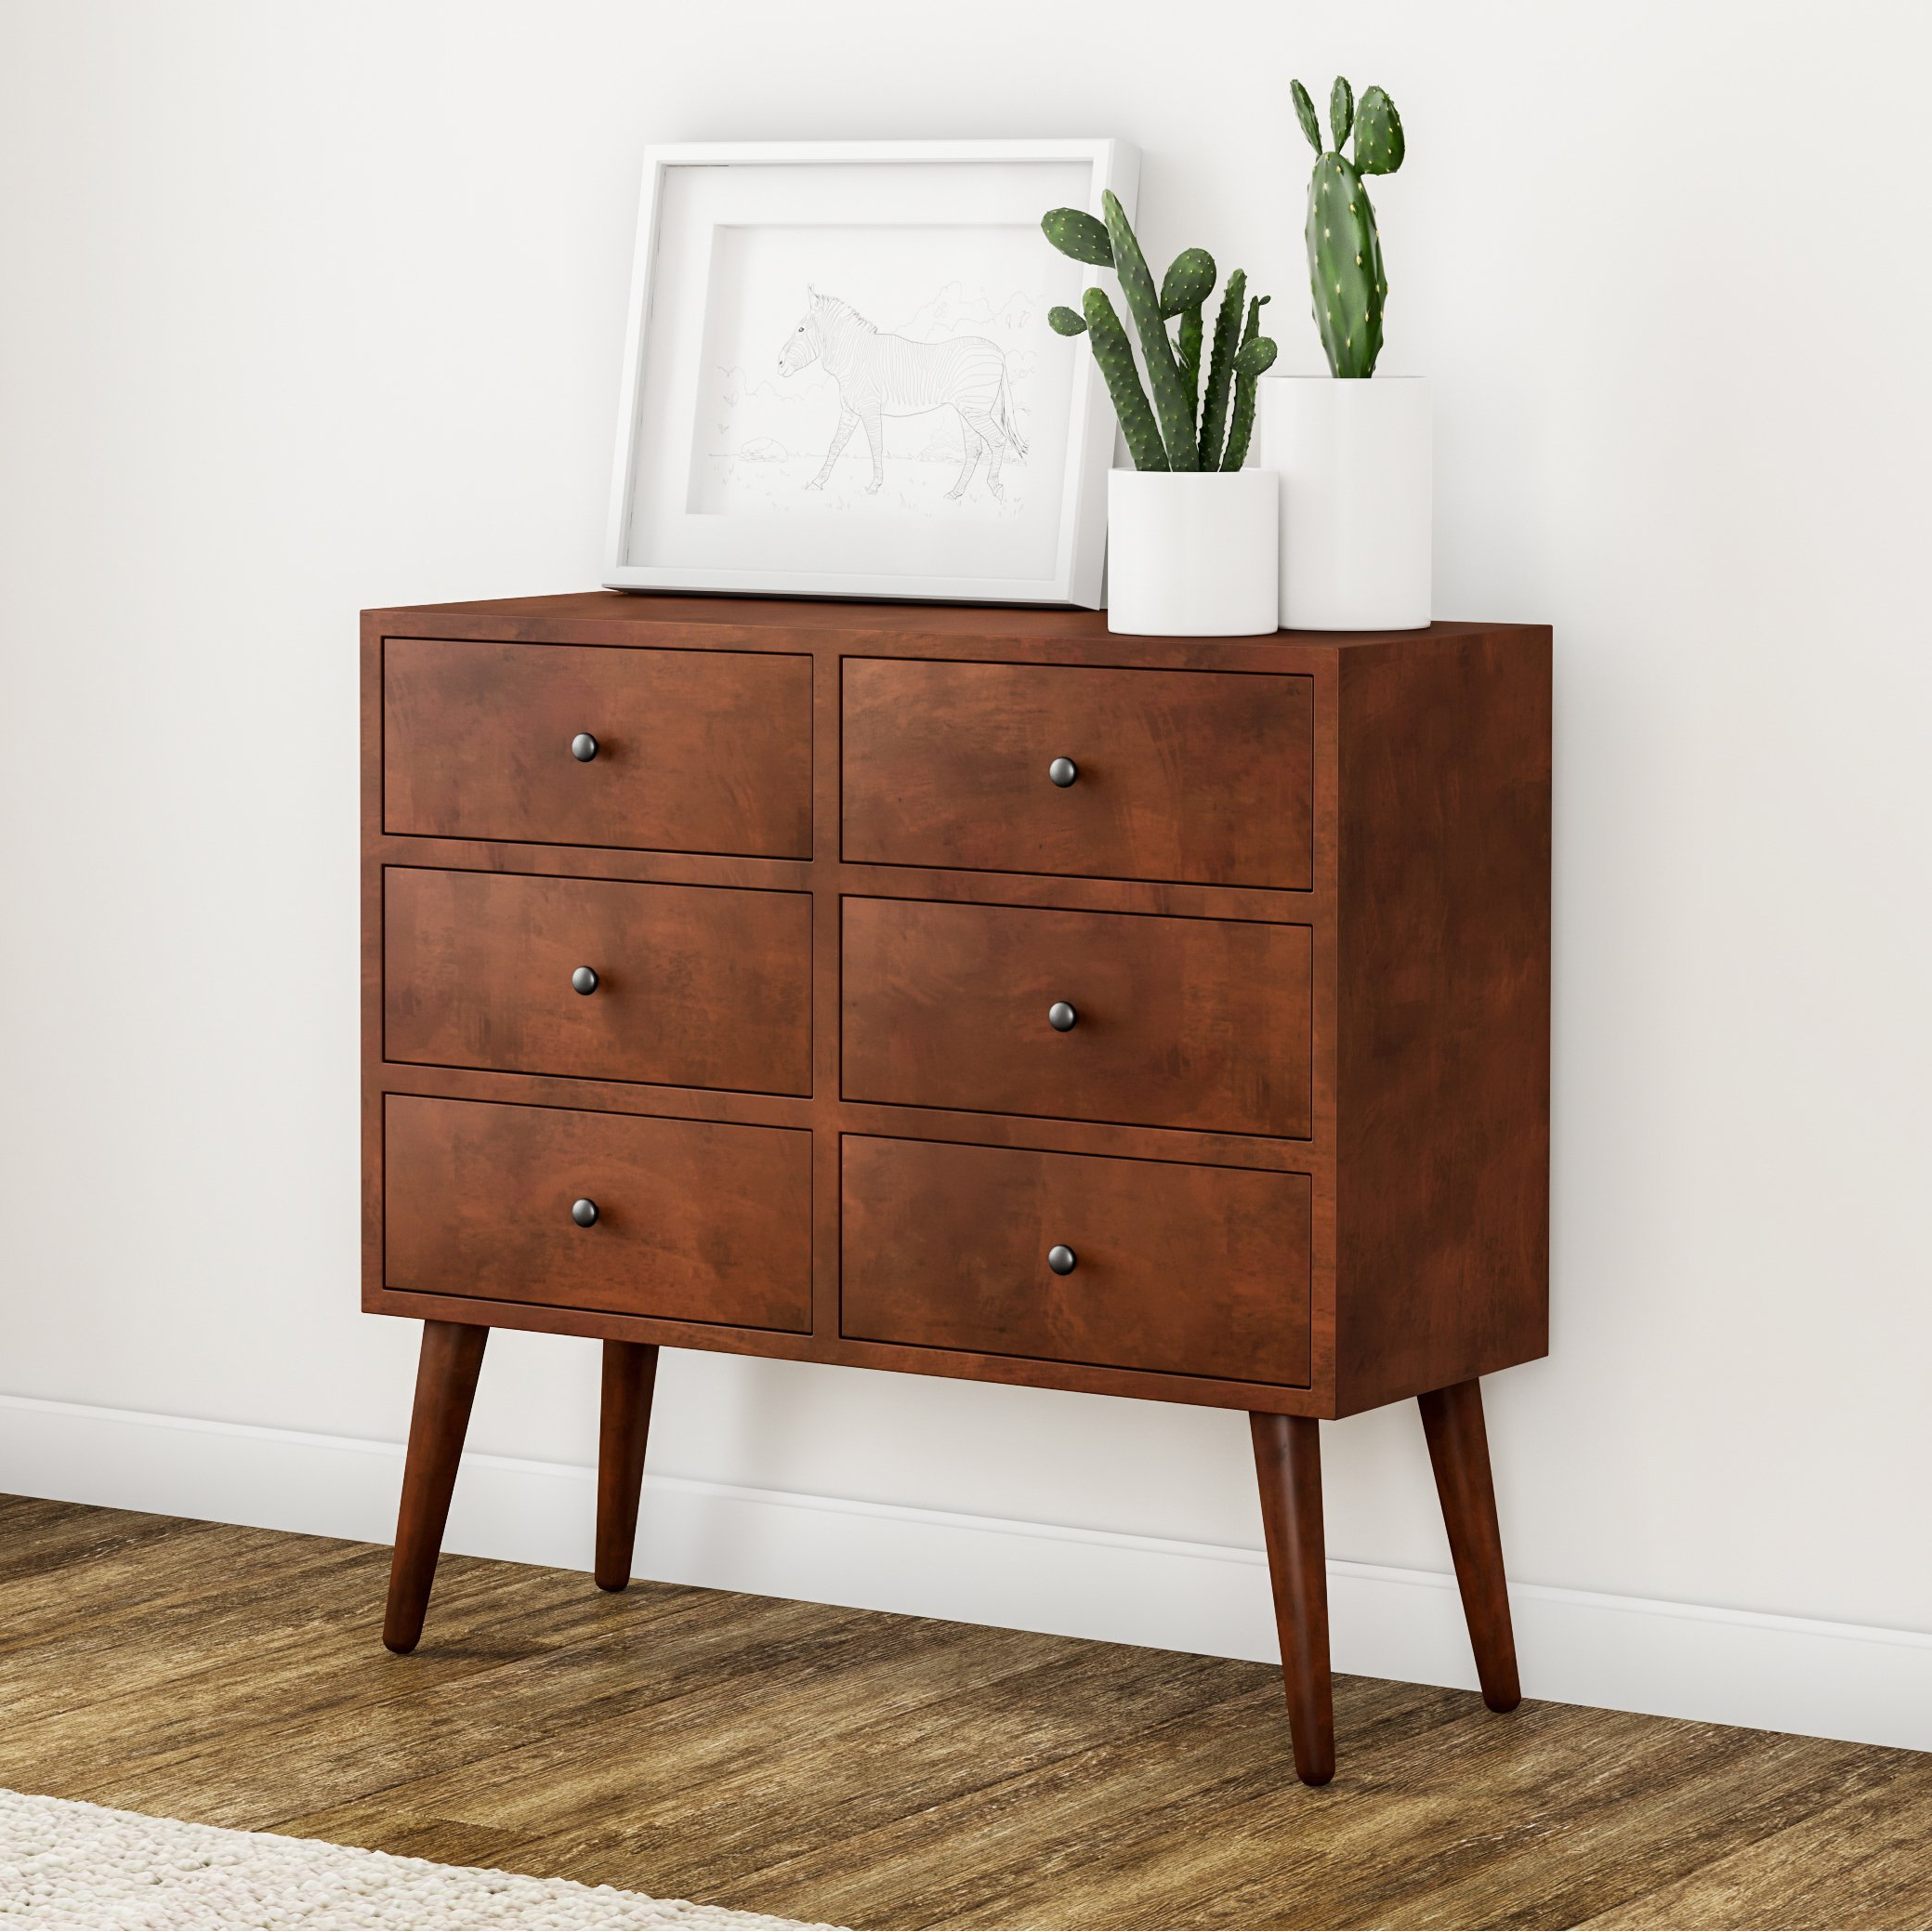 Popular Shop Carson Carrington Linkoping Mid Century 6 Drawer Wood Accent Pertaining To Walnut Finish 6 Drawer Coffee Tables (View 12 of 20)